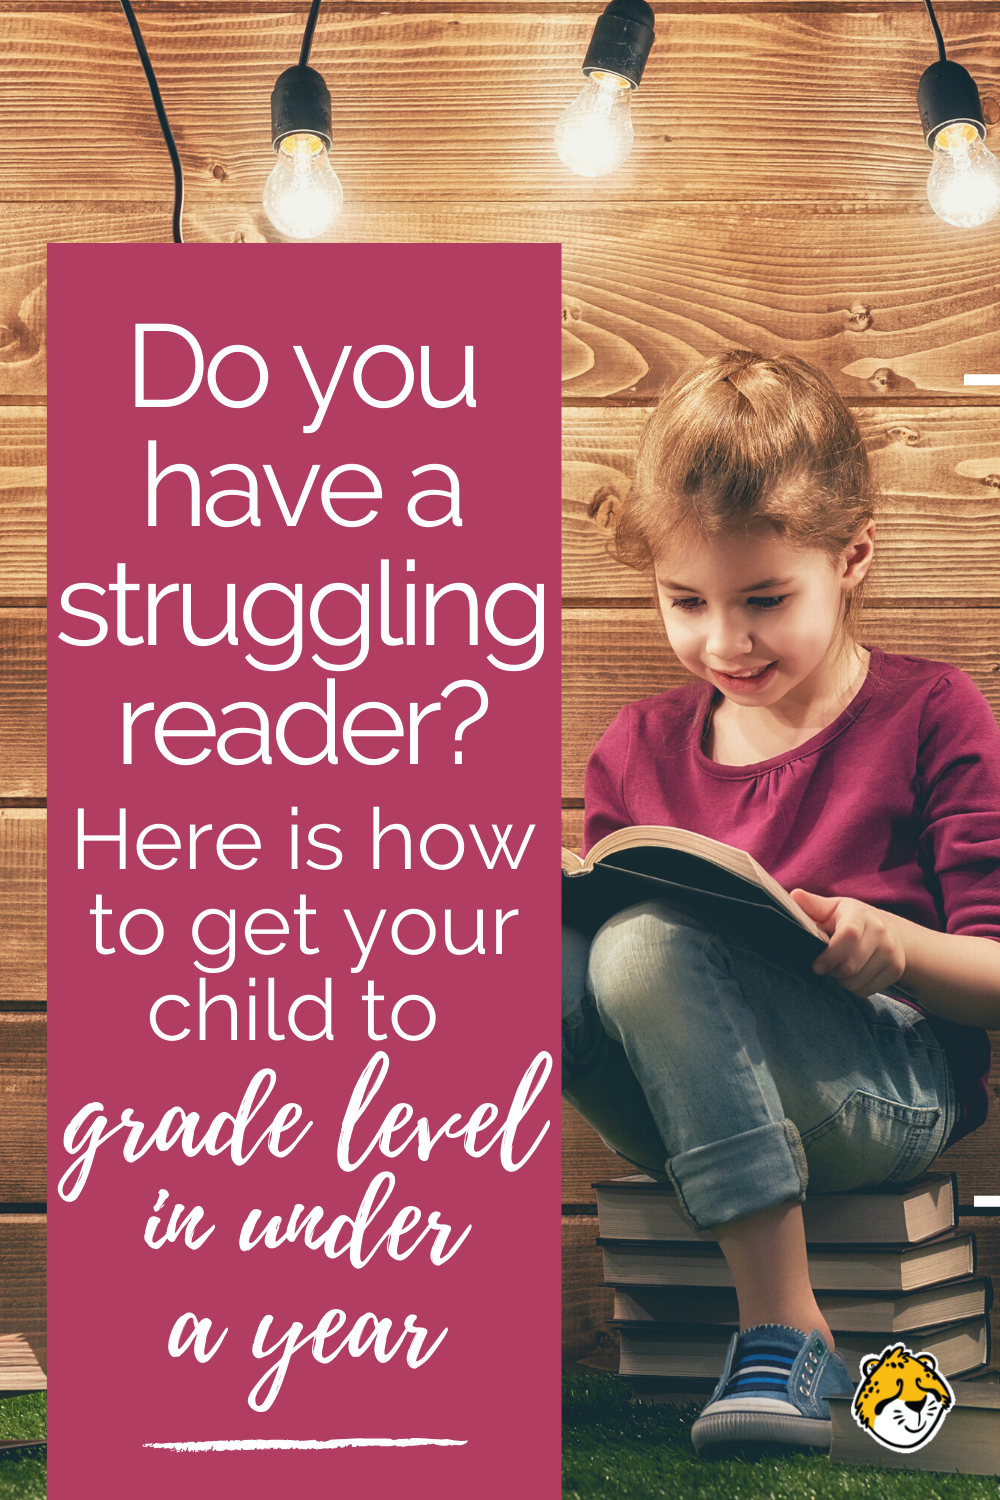 How to Go from Illiterate to Grade Level in Less Than a Year